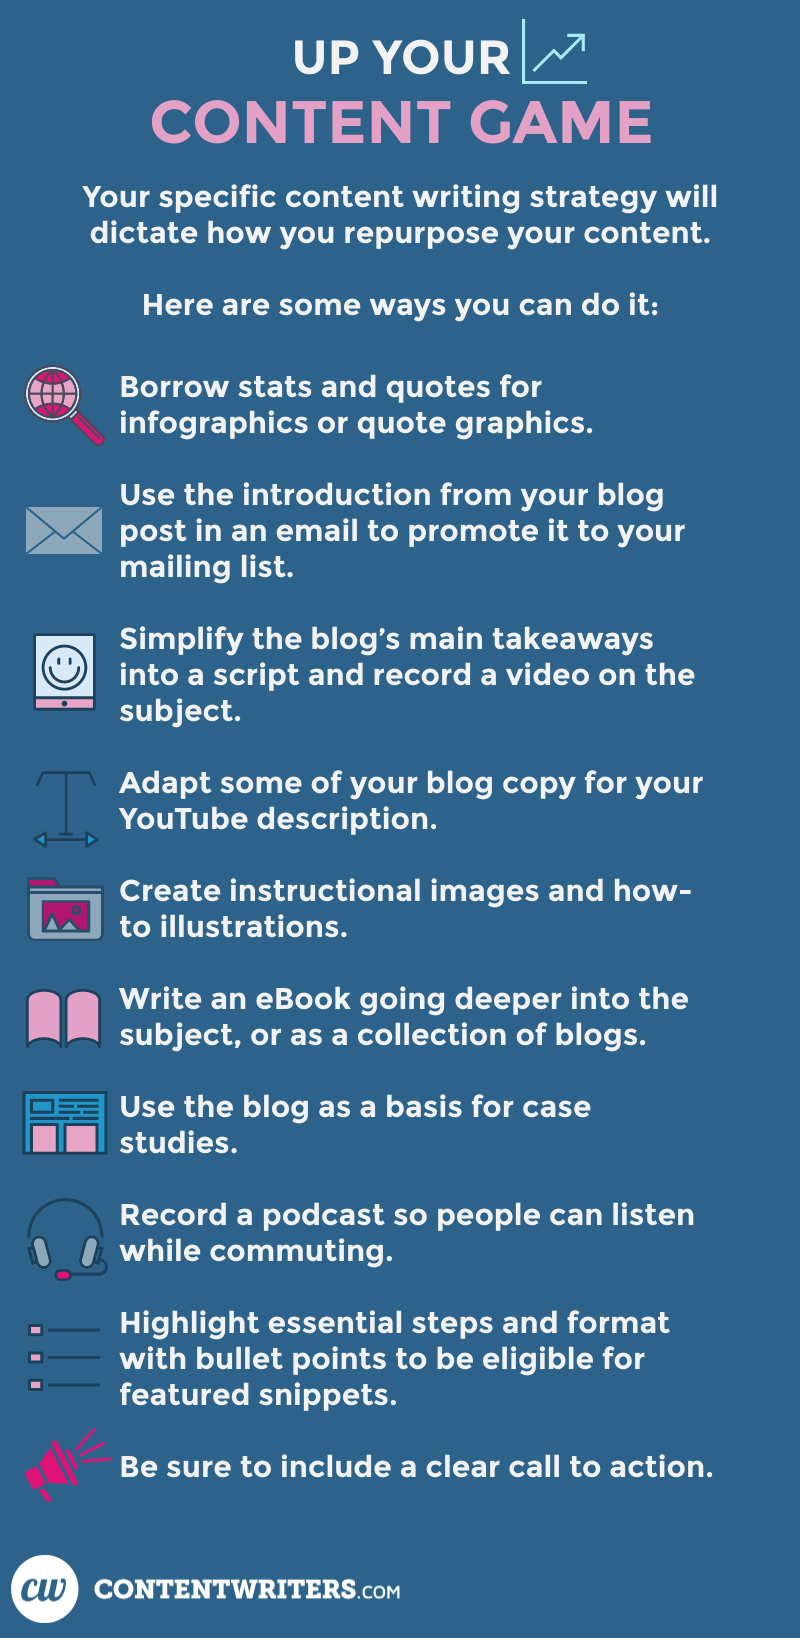 Your specific content writing strategy will dictate how you repurpose your content. Here are some ways you can do it:	 	 Borrow stats and quotes for infographics or quote graphics.	 Use the introduction from your blog post in an email to promote it to your mailing list.	 Simplify the blog's main takeaways into a script and record a video on the subject.	 Adapt some of your blog copy for your YouTube description.	 Create instructional images and how-to illustrations.	 Write an eBook going deeper into the subject, or as a collection of blogs.	 Use the blog as a basis for case studies.	 Record a podcast so people can listen while commuting.	 Highlight essential steps and format with bullet points to be eligible for featured snippets.	 Be sure to include a clear call to action.